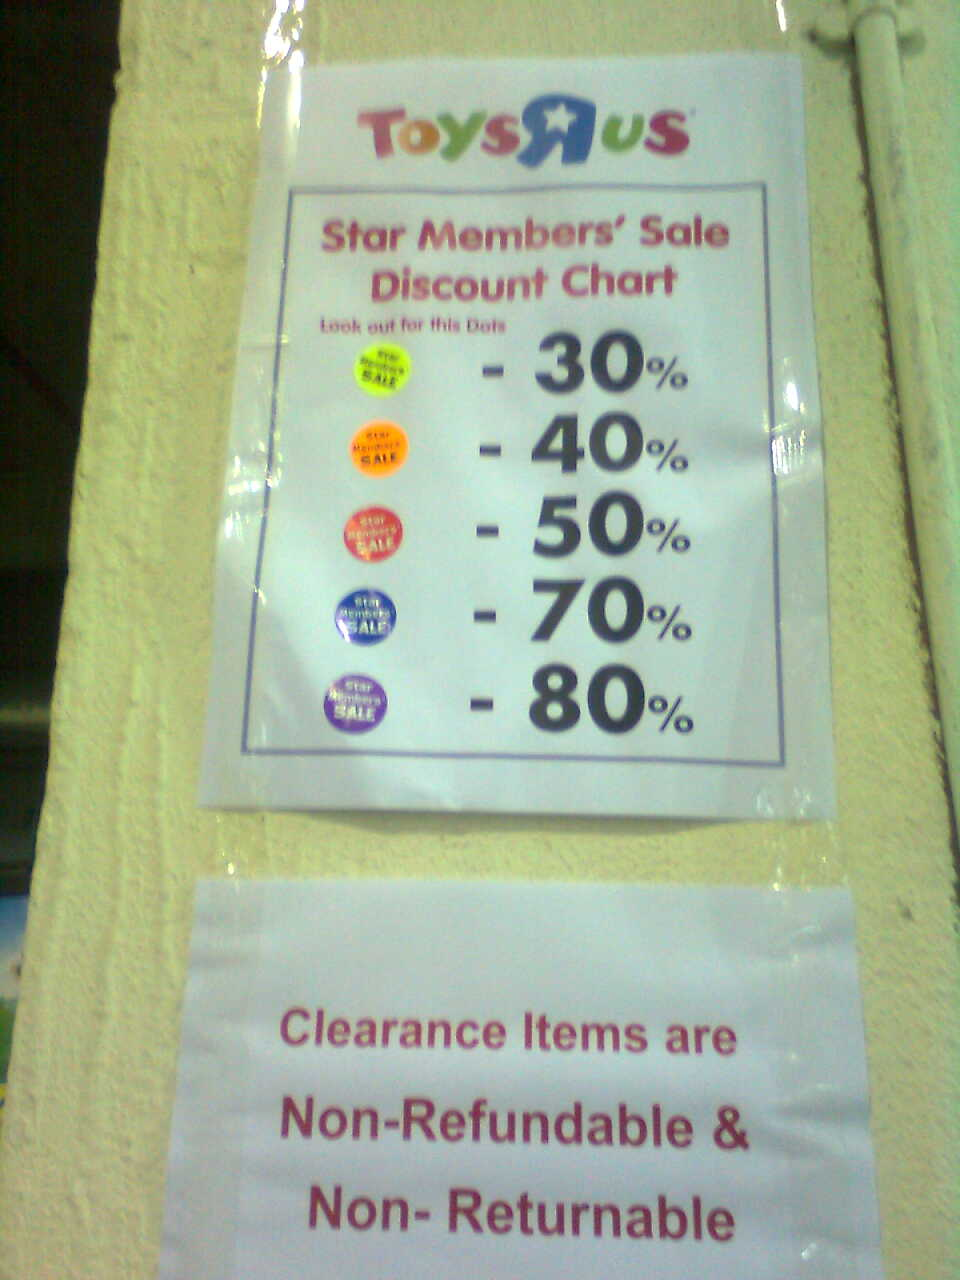 however not all toy items have these colour coded member discount stickers meaning to say this clearance sale is also opened to non members